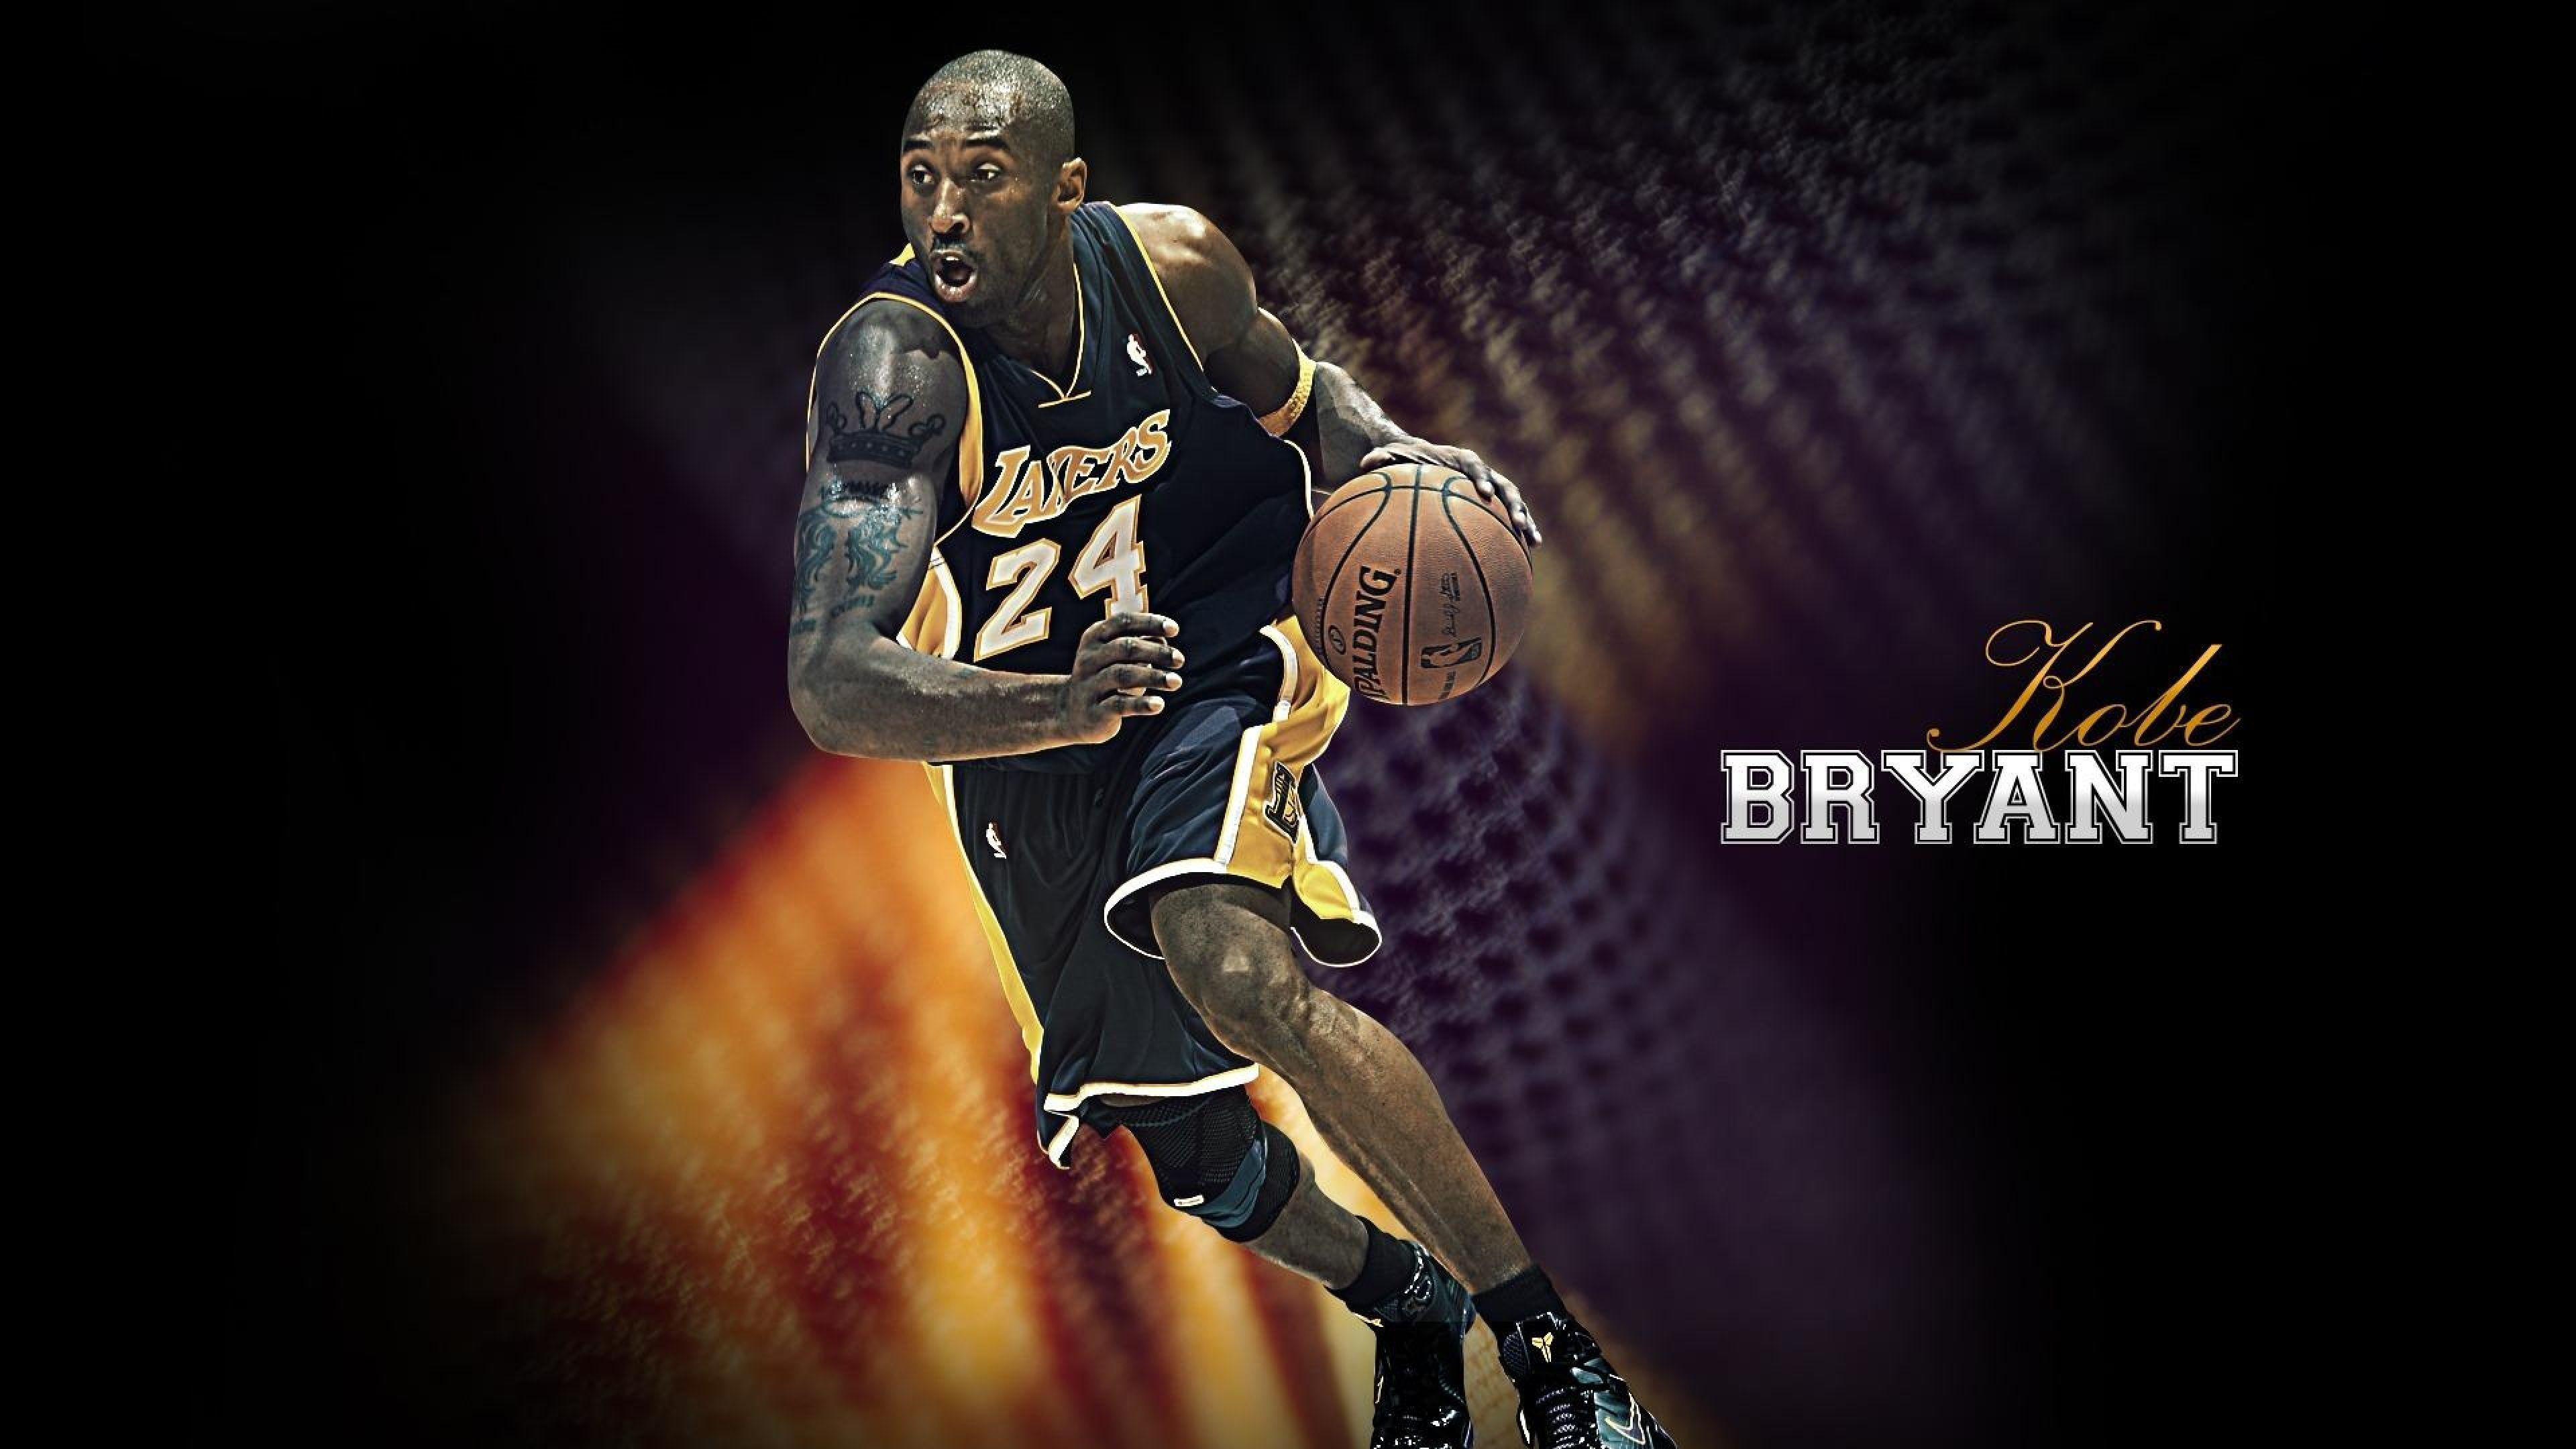 Most Inspiring Wallpaper Logo Kobe Bryant - wc1748677  Best Photo Reference_708430.jpg